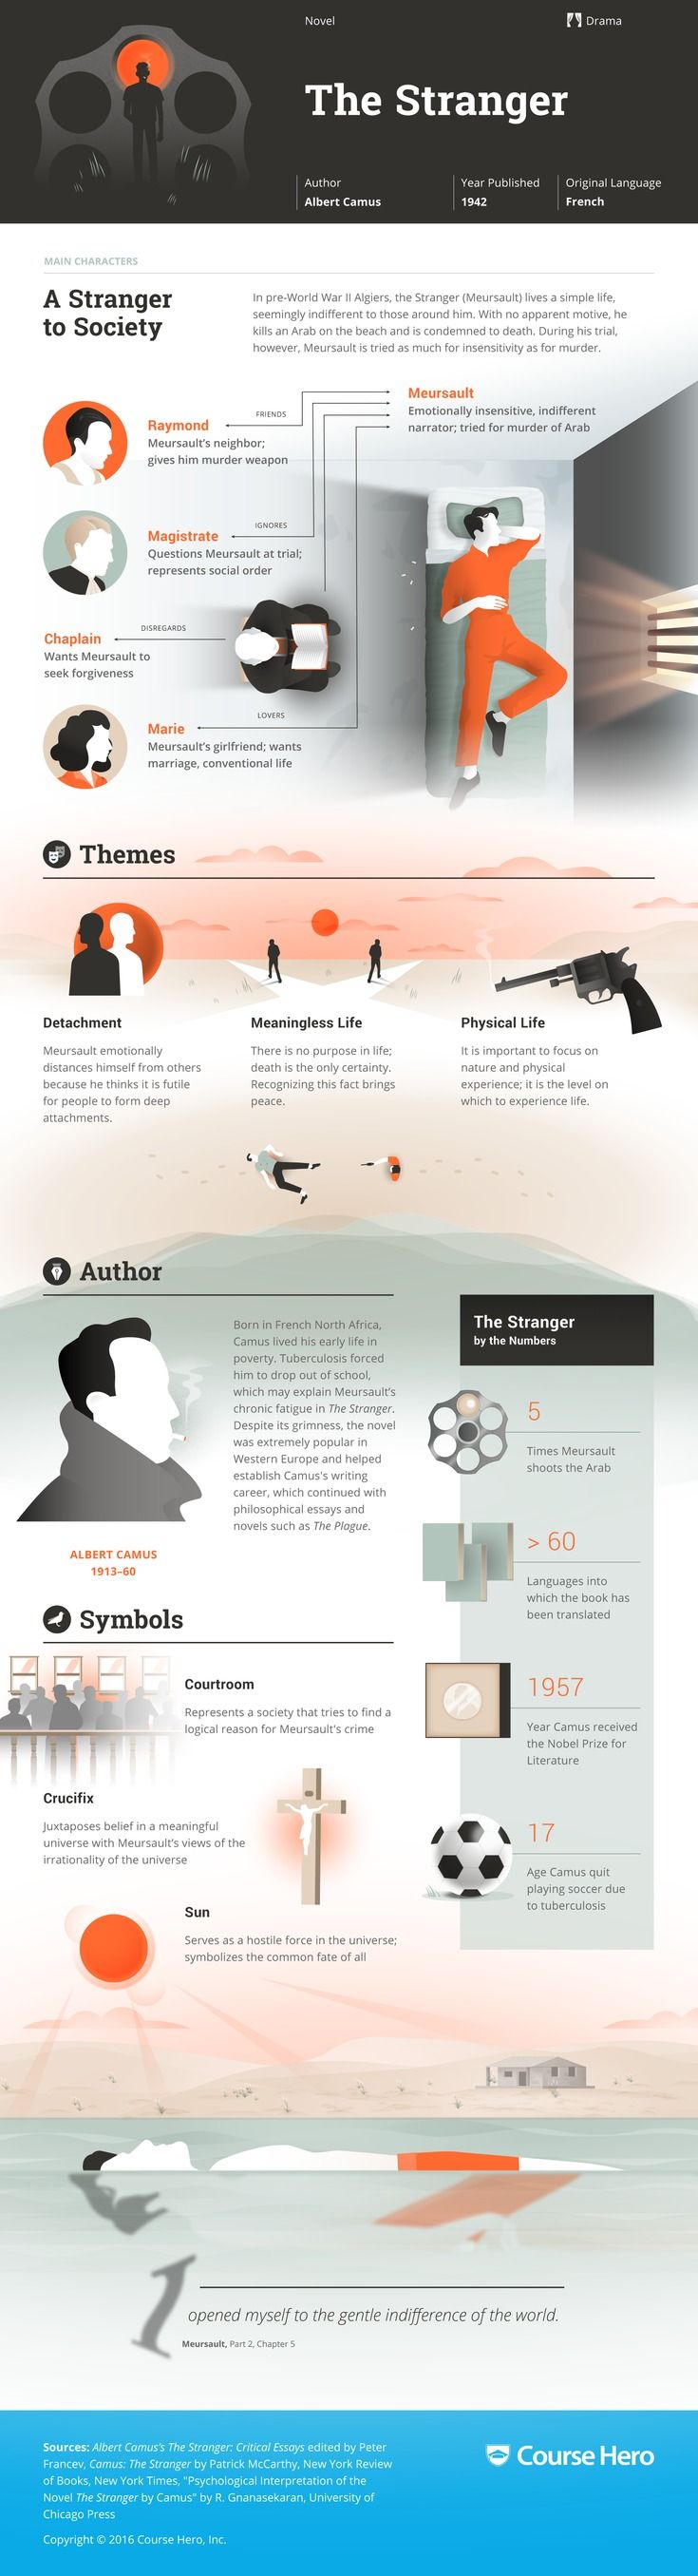 best images about infographics social media study guide for albert camus s the stranger including chapter summary character analysis and more learn all about the stranger ask questions